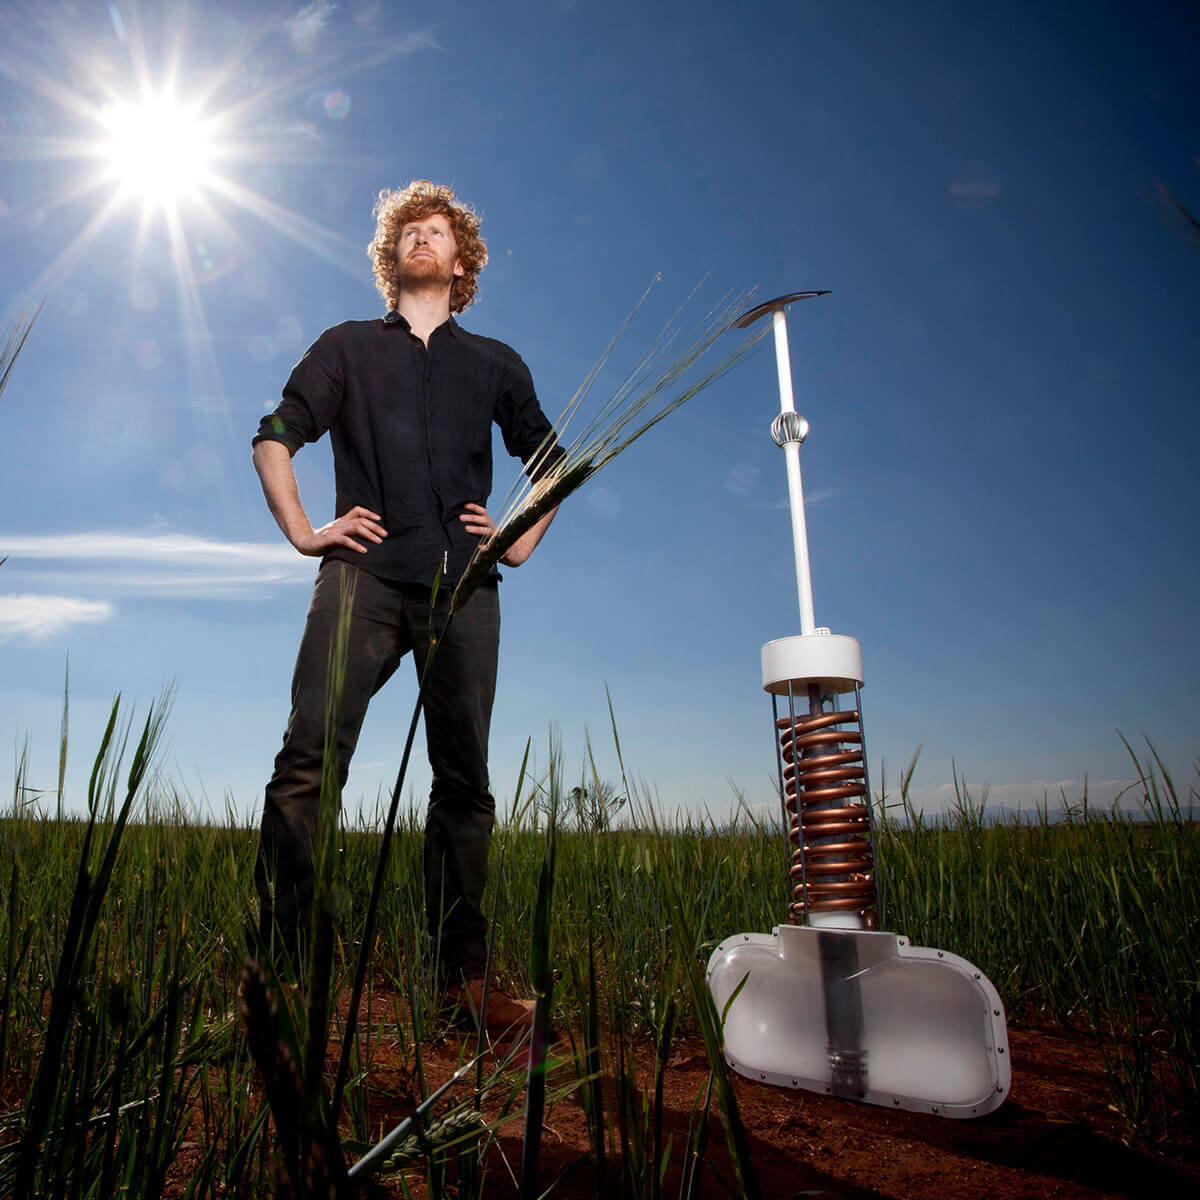 2011 international winner of the James Dyson Award, Edward Linacre, with his invention Airdrop.